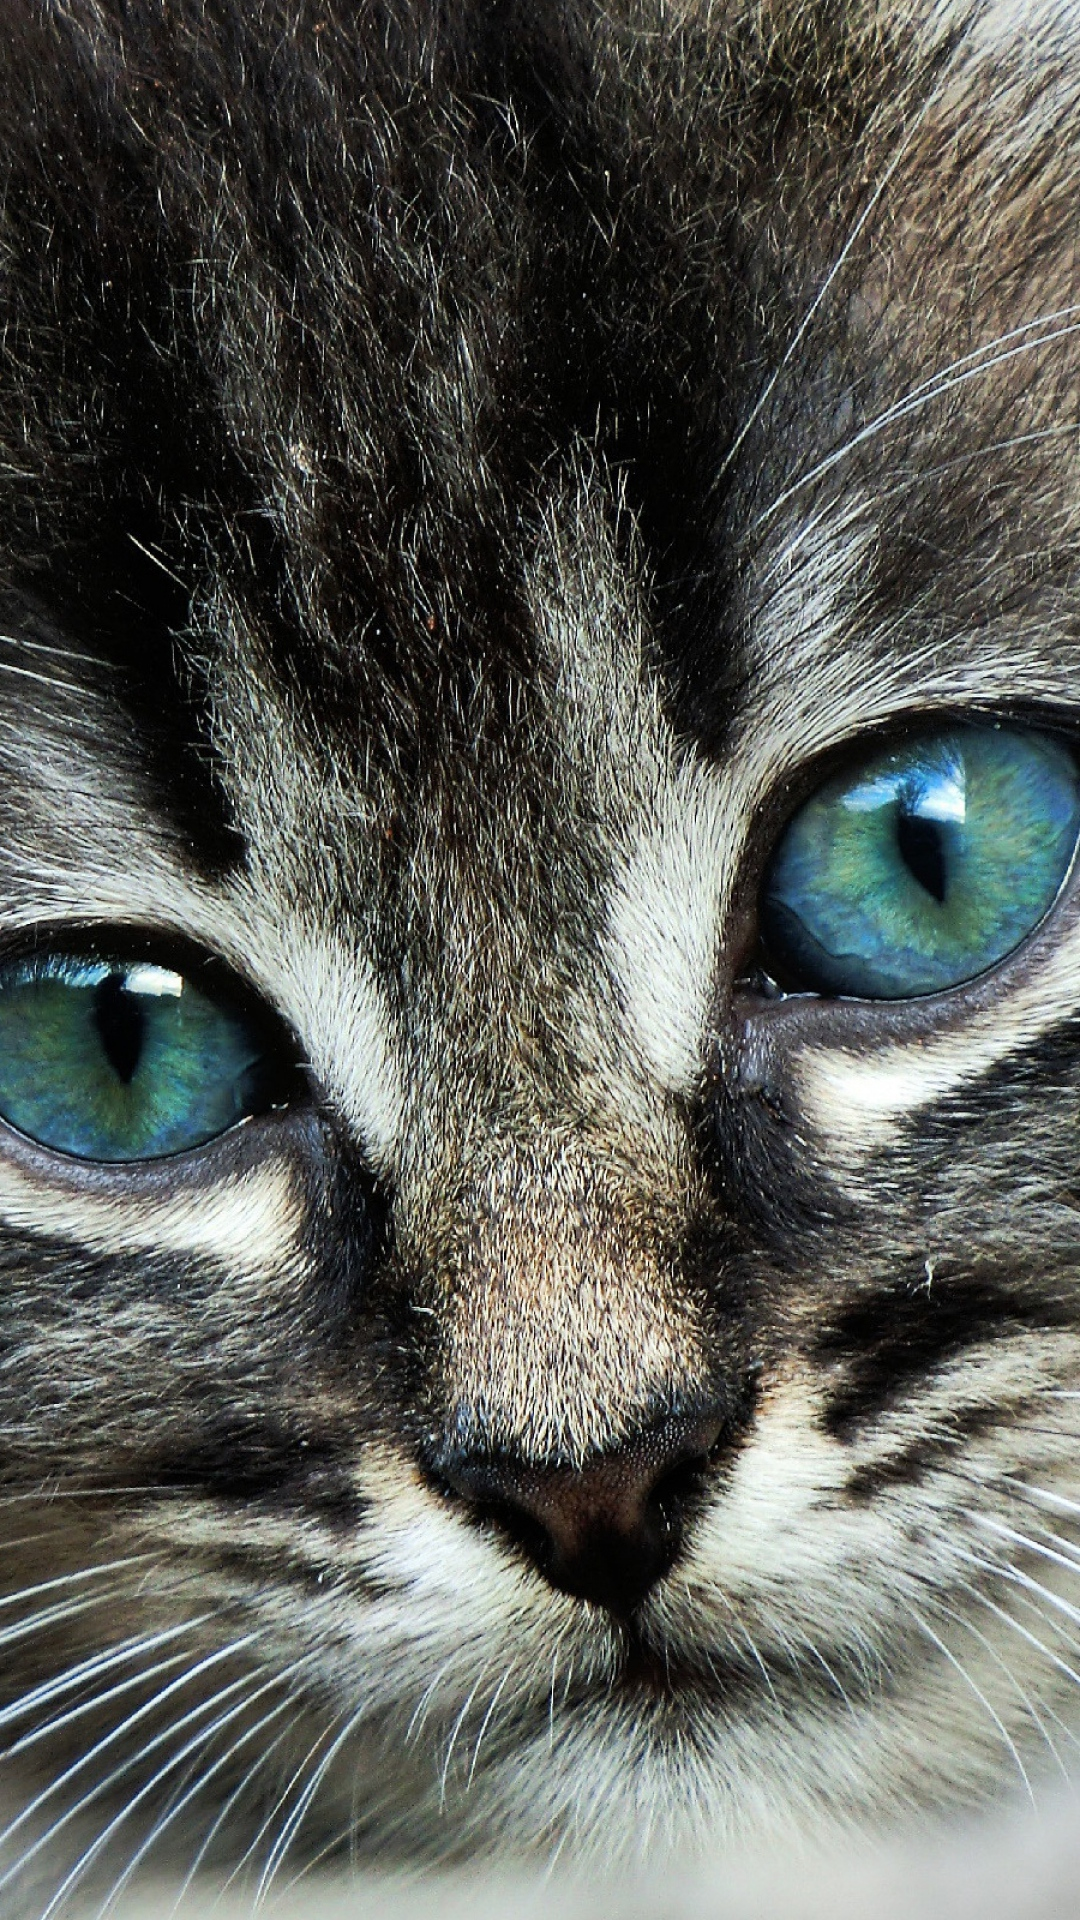 Download-1080x1920-cat-face-eyes-color-Sony-Xperia-Z-ZL-Z-Samsung-Galaxy-S-HTC-On-wallpaper-wp3605084